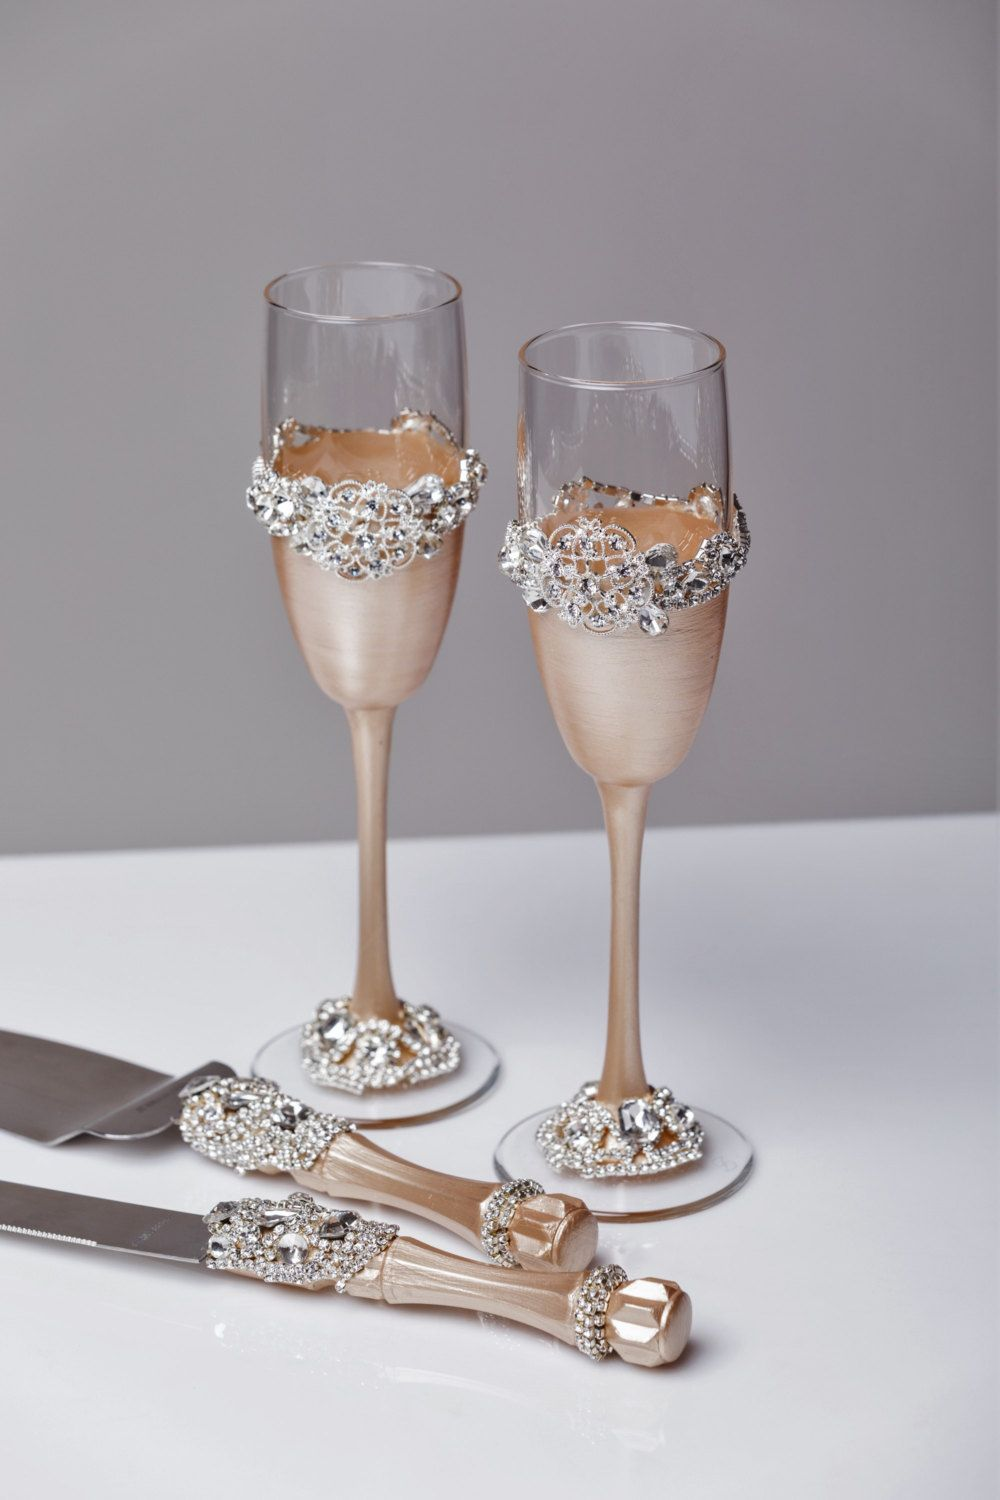 Personalized Wedding Gl And Cake Server Set Light Champagne Flutes Cutting Of 4